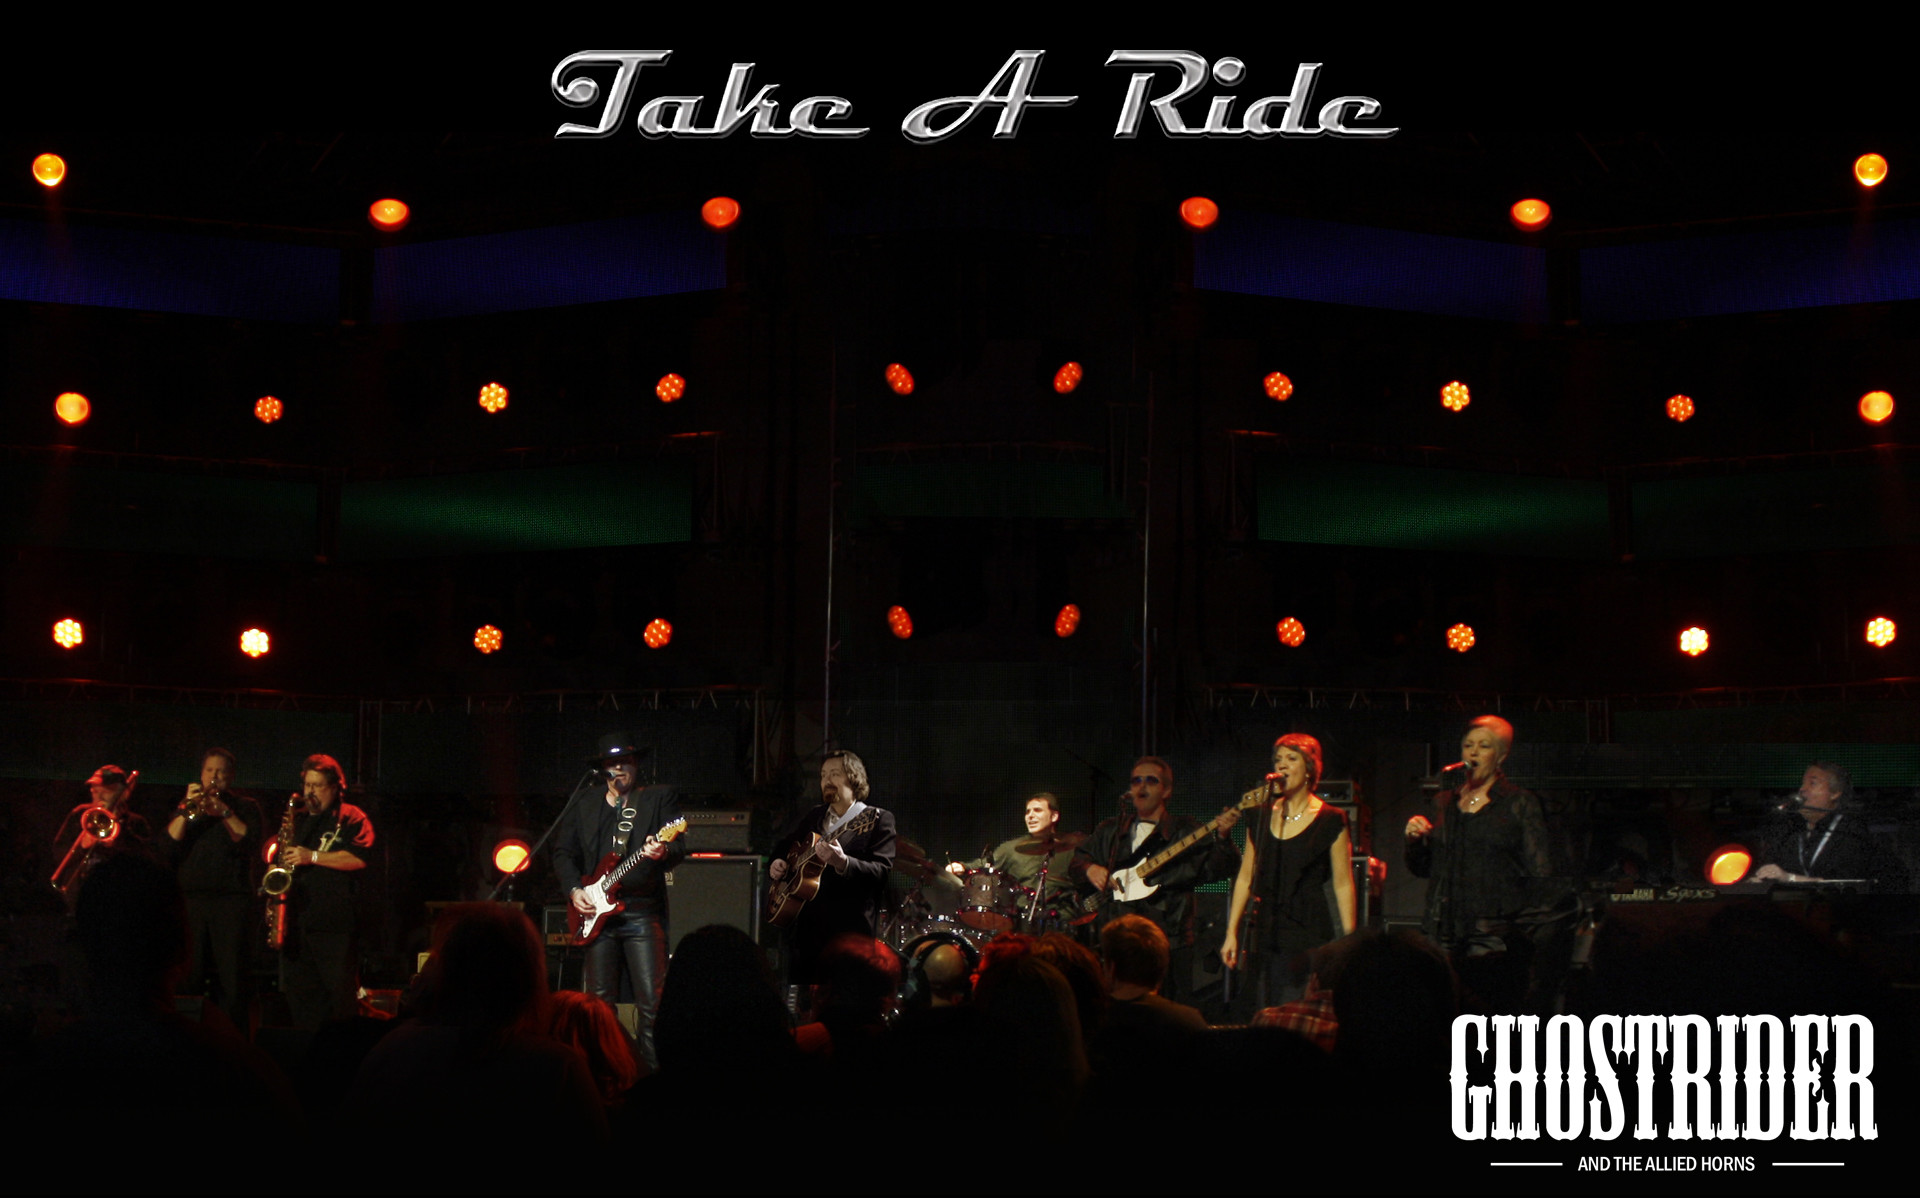 """Res: 1920x1200, Ghostrider is pleased to offer FREE Wallpapers created from band photos and  artwork featured on the band's albums - """"Take A Ride"""" and """"House Rockin""""."""